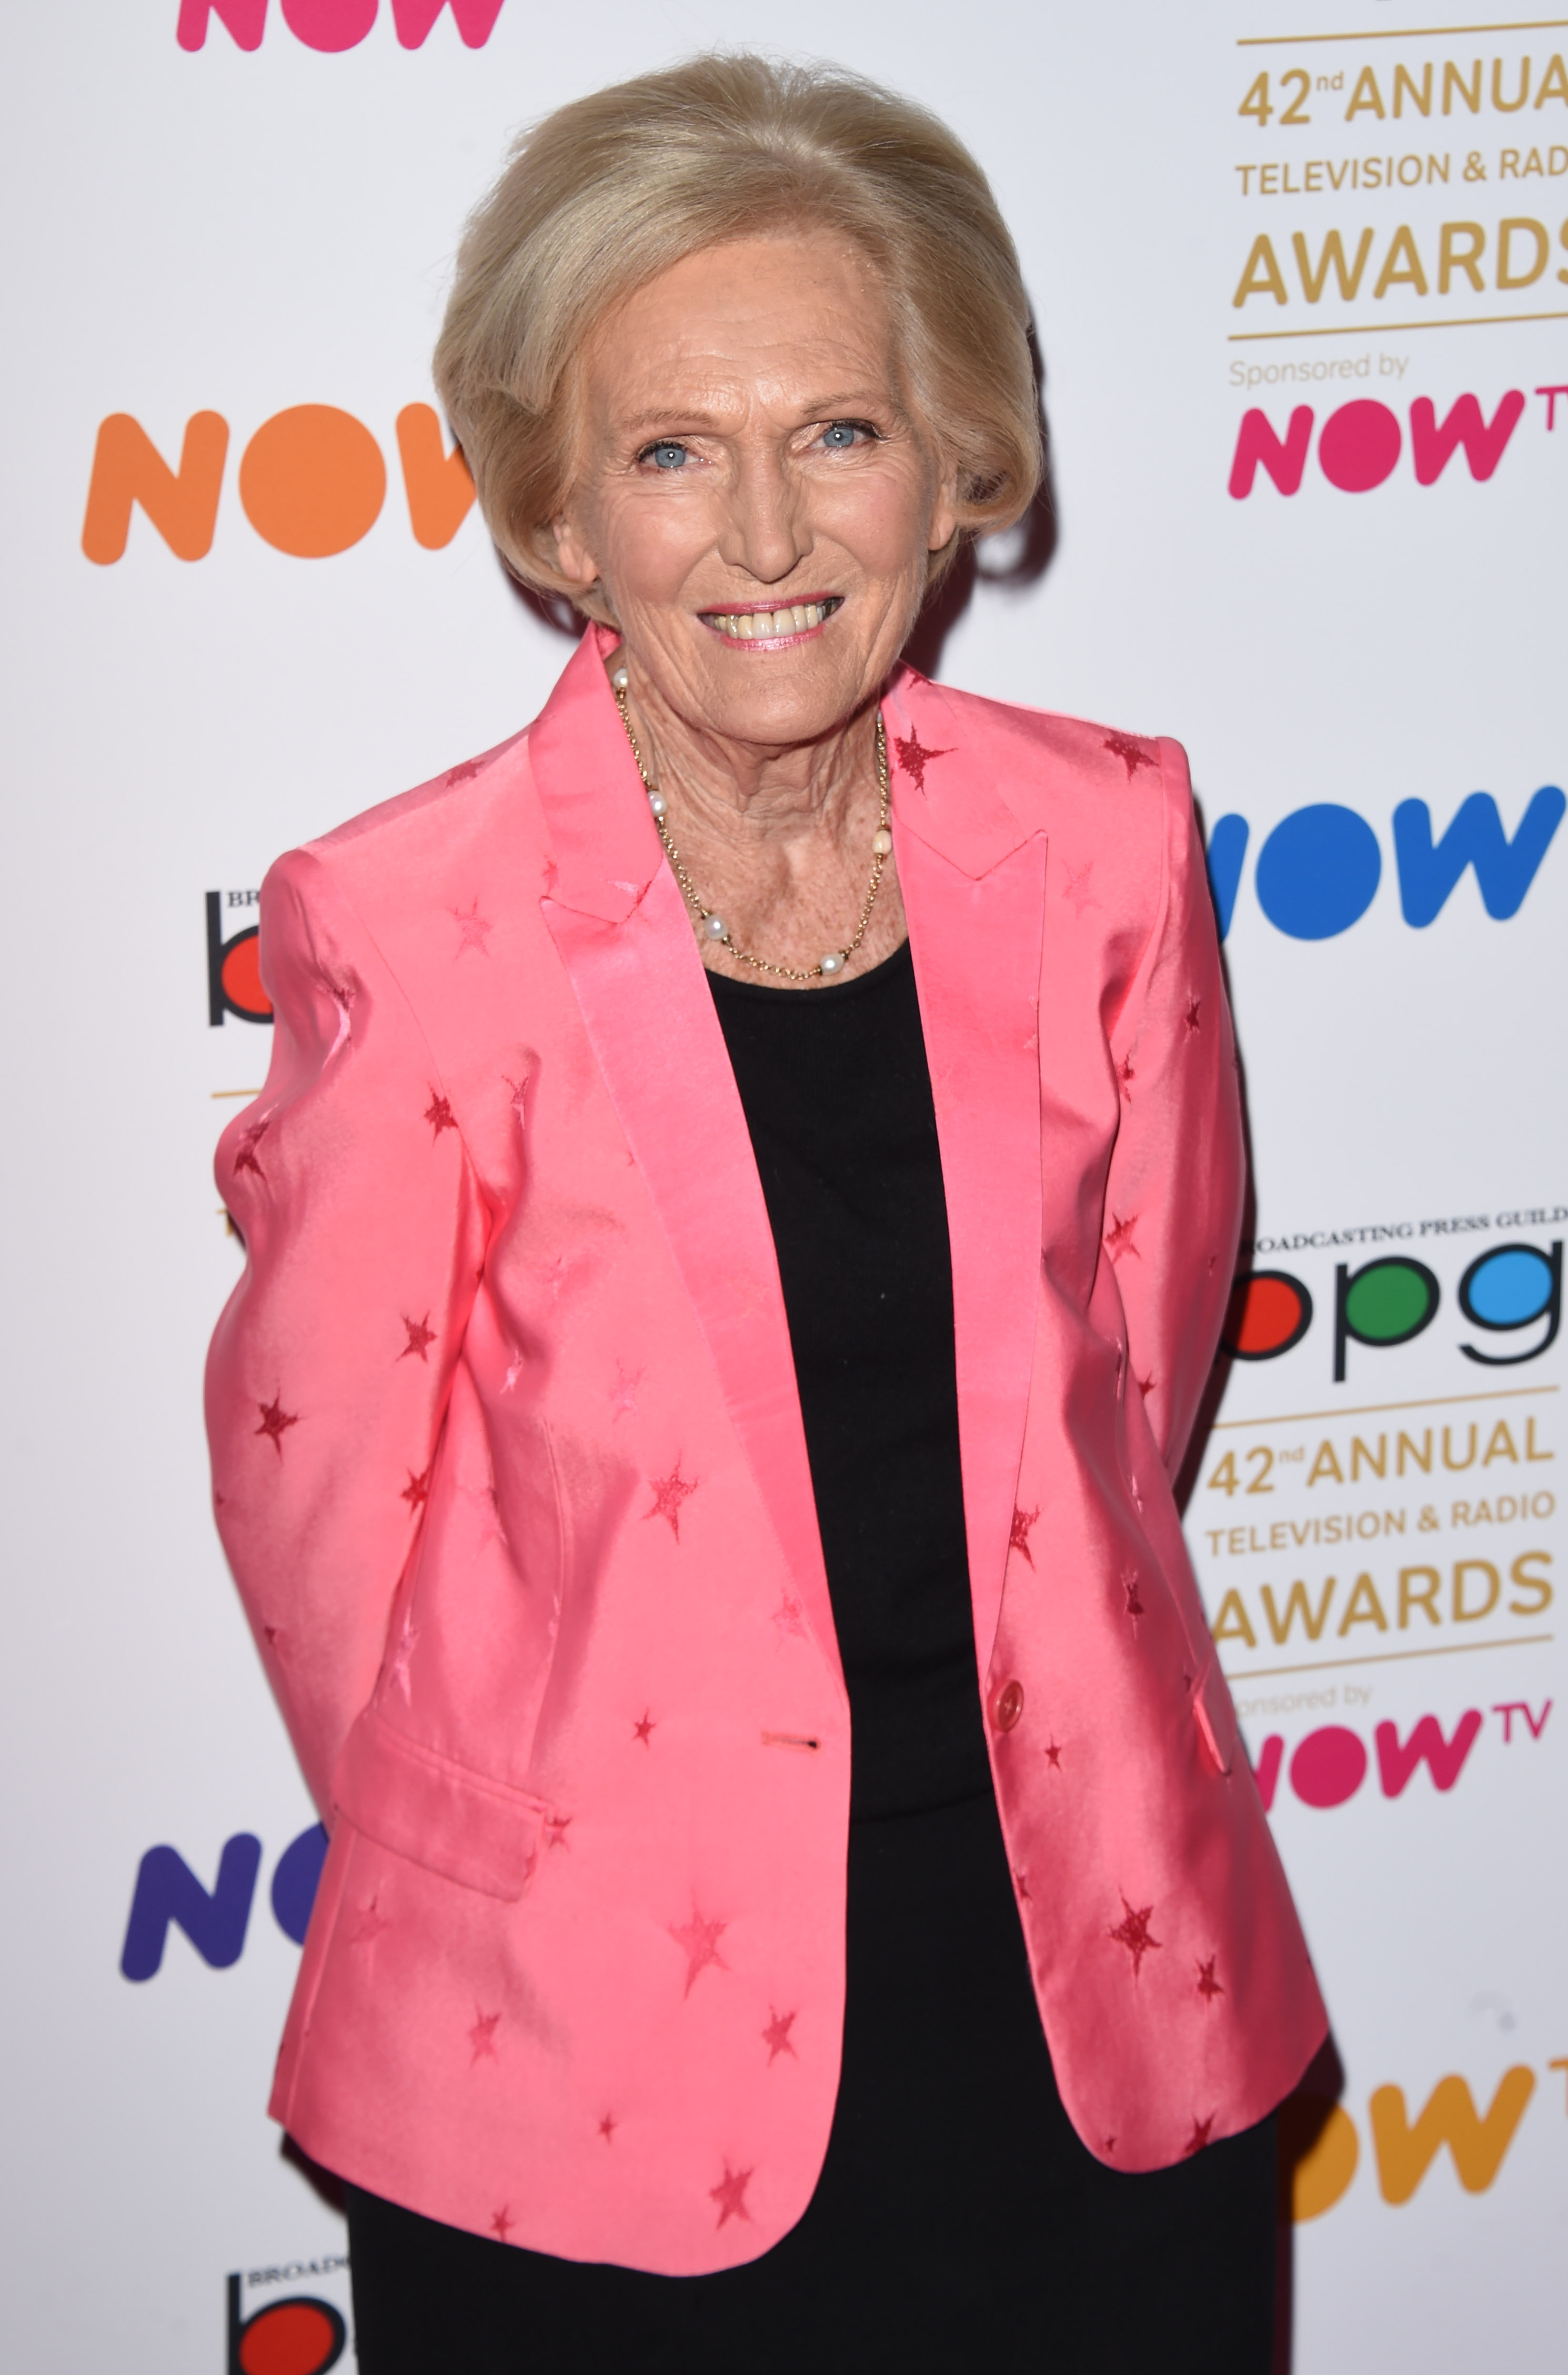 Mary Berry attending an awards show in a pink suit